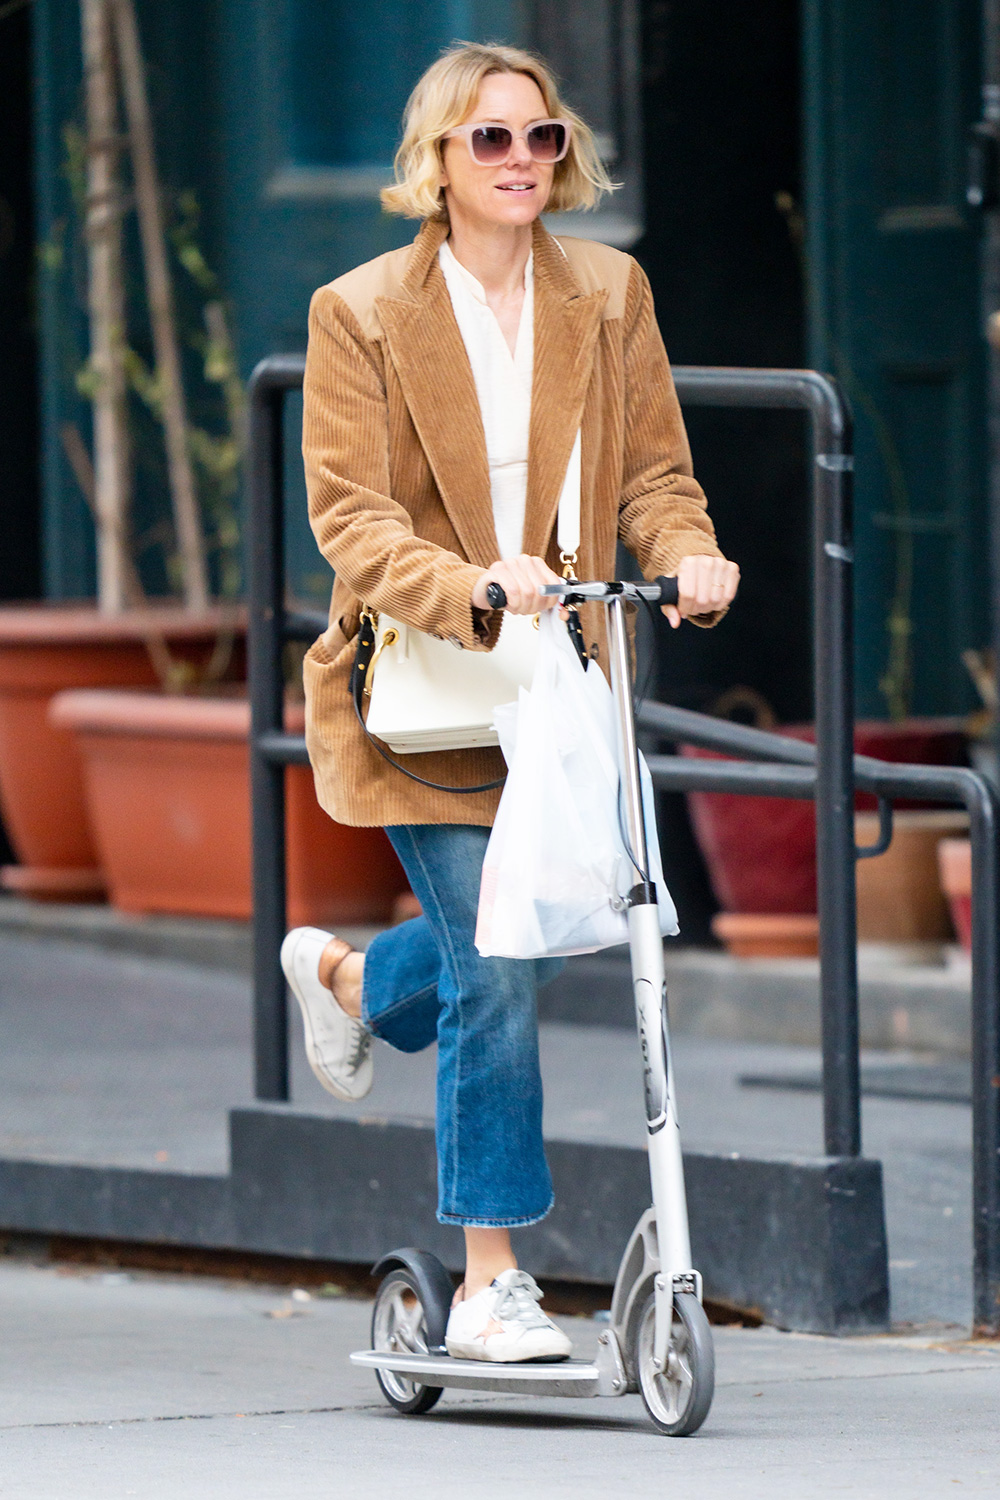 Naomi Watts out doing errands on a scooter in New York City